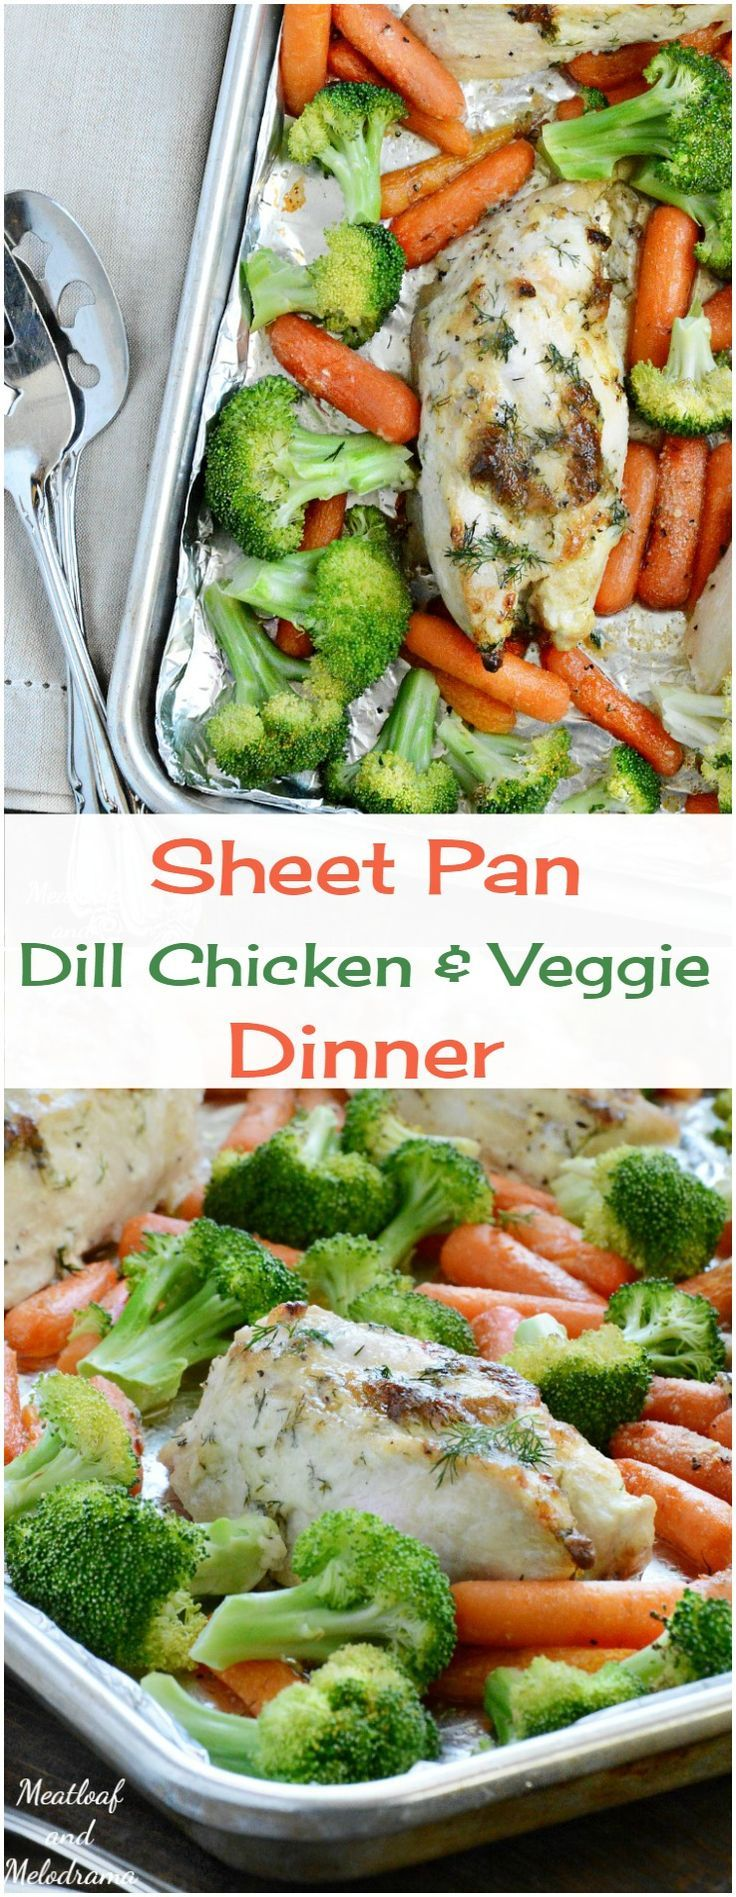 Sheet  Pan Dill Chicken Dinner -  A quick, easy, light and healthy one dish chicken dinner with carrots and broccoli. Can easily be made to fit Whole 30 and gluten free diets, and clean-up is fast!